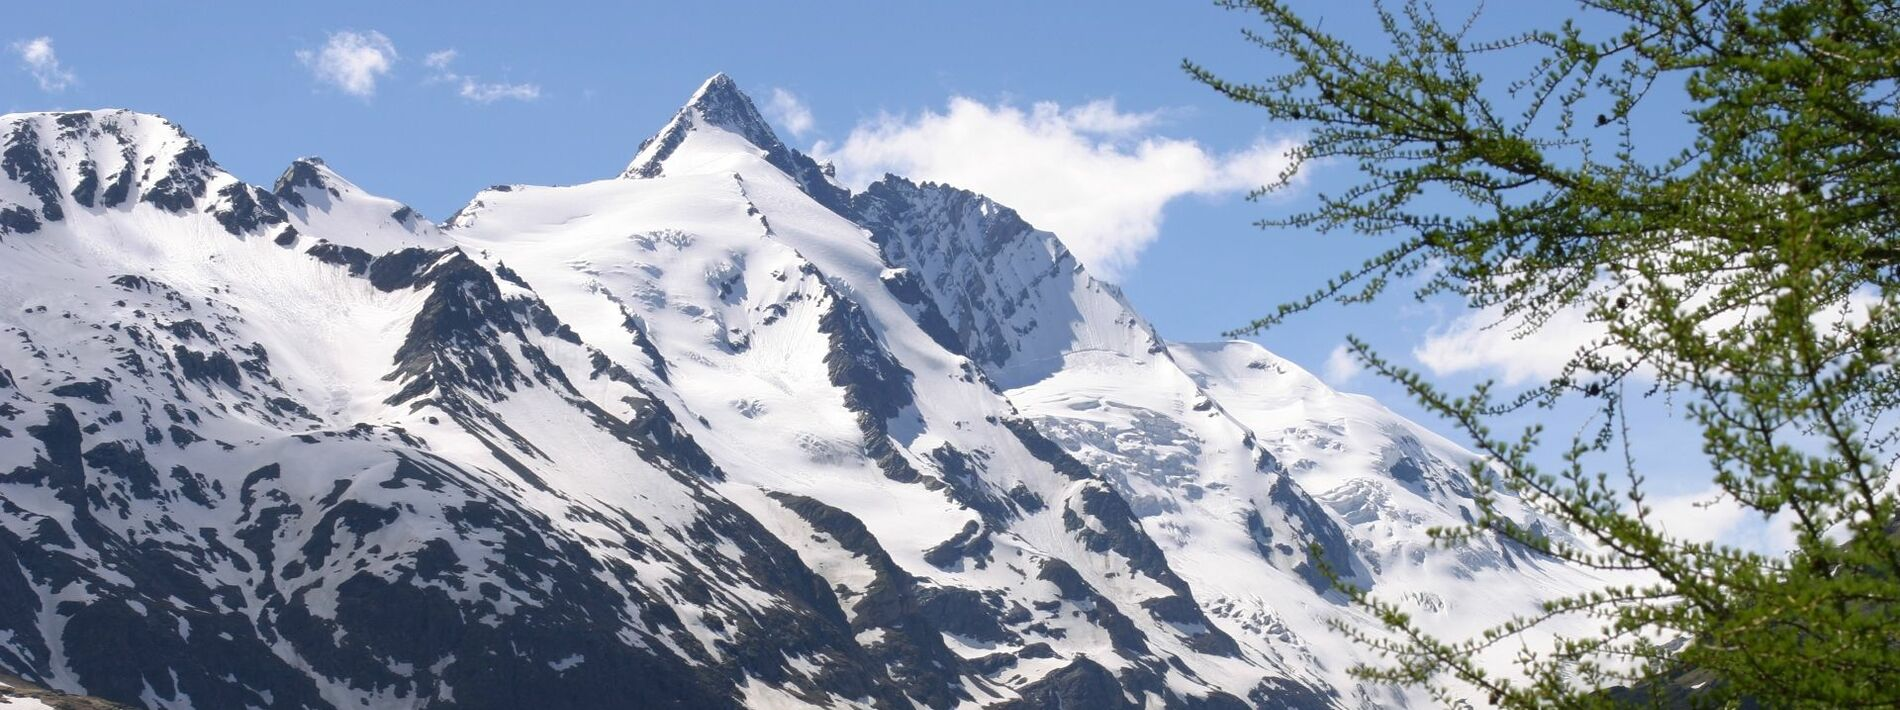 View of the Großglockner in the national park Hohe Tauern